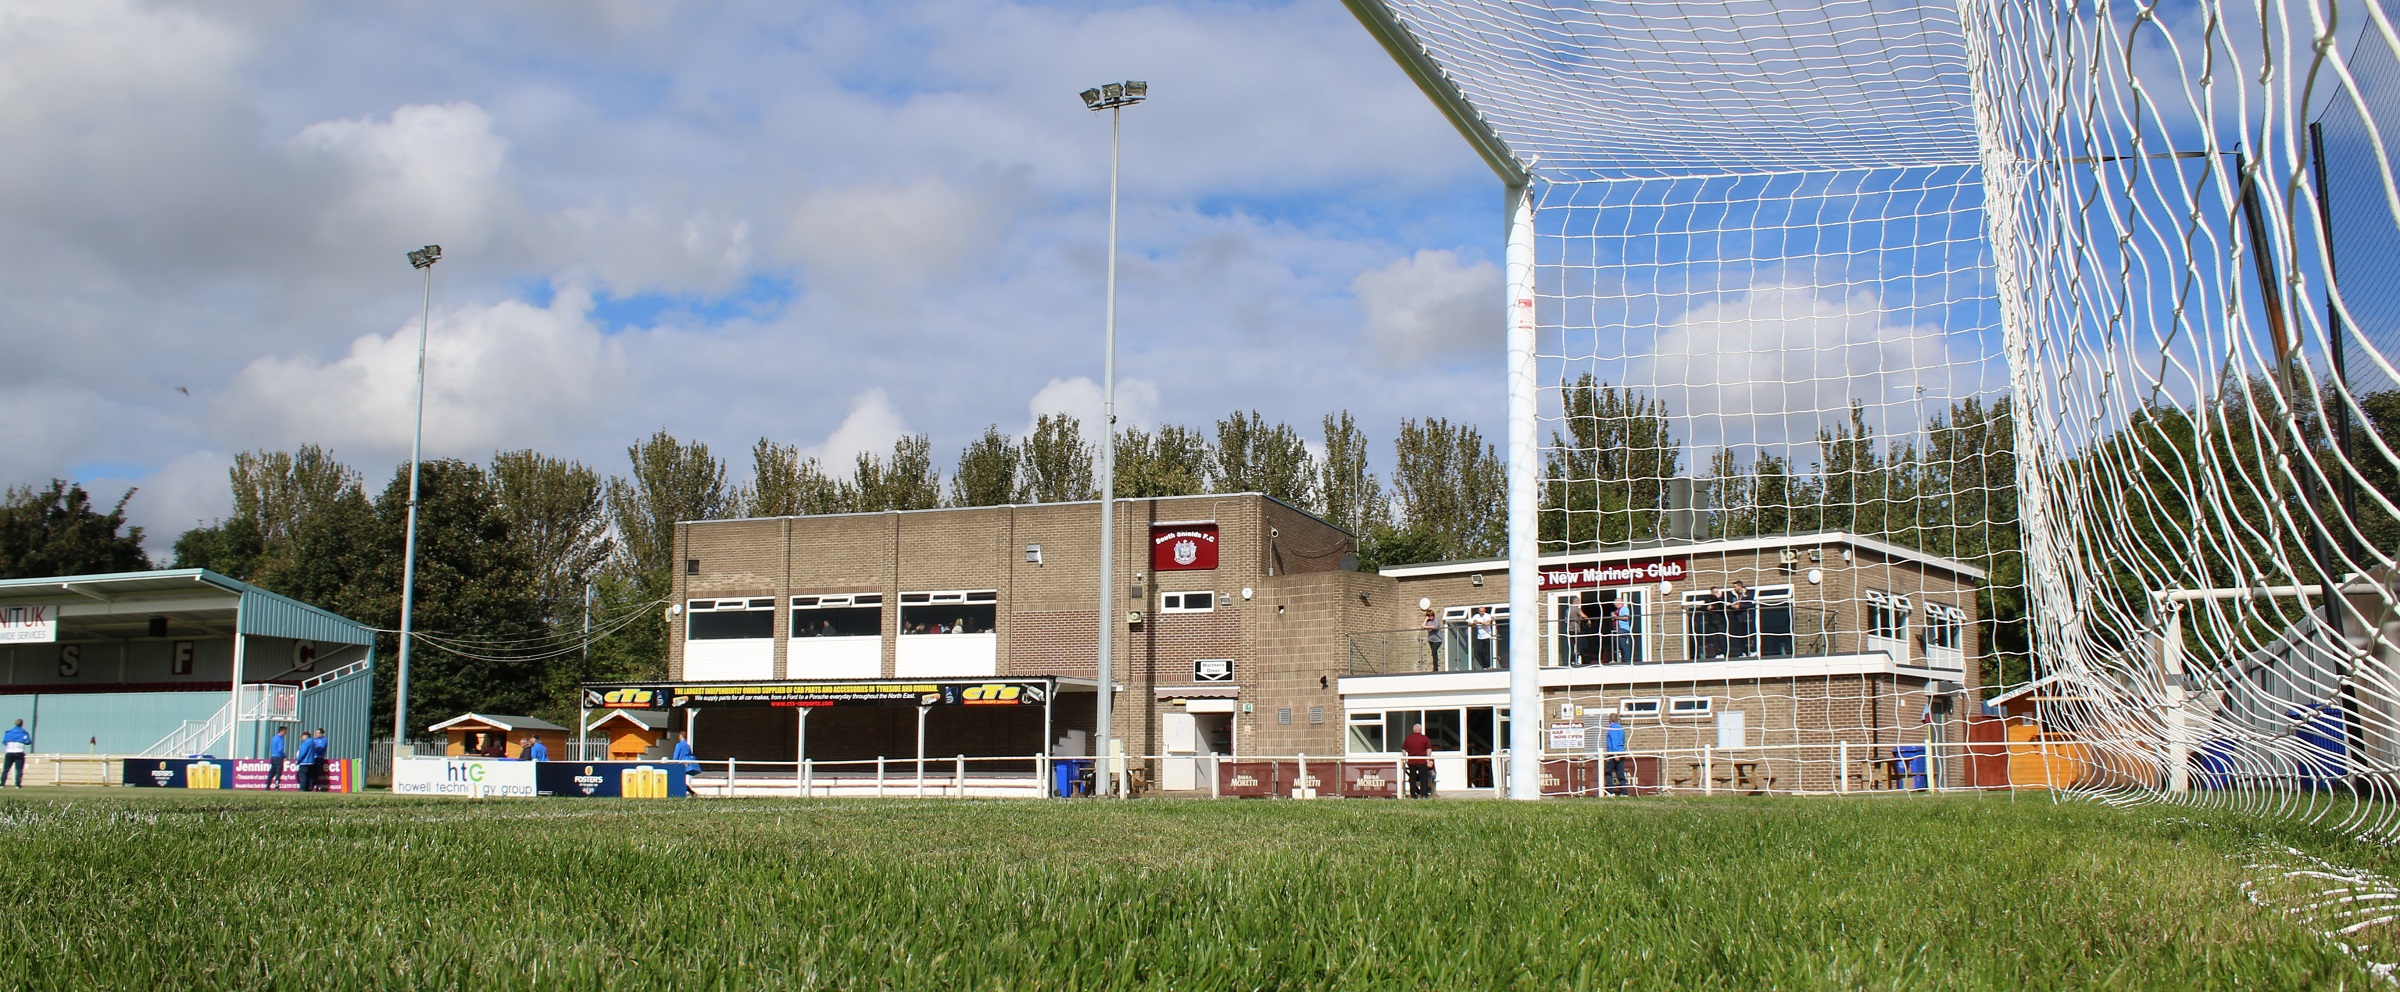 Mariners Park Christmas parties: Book now to avoid disappointment!